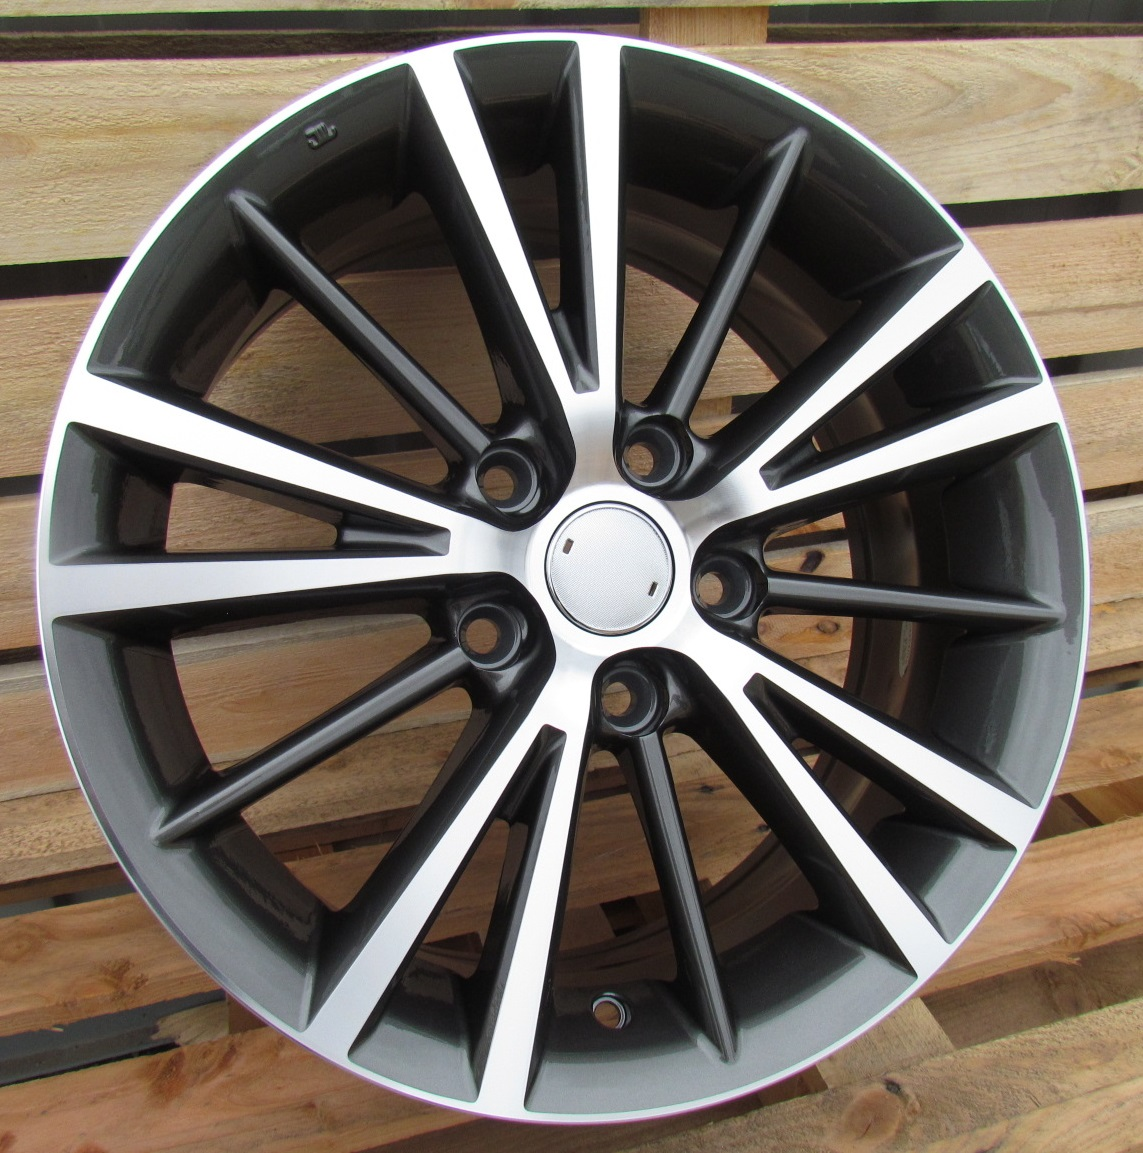 T15X6.5 5X114.3 ET40 60.1 A5197 MG+POWDER COATING (+3eur) RWR TOY ()## 6.5x15 ET40 5x114.3